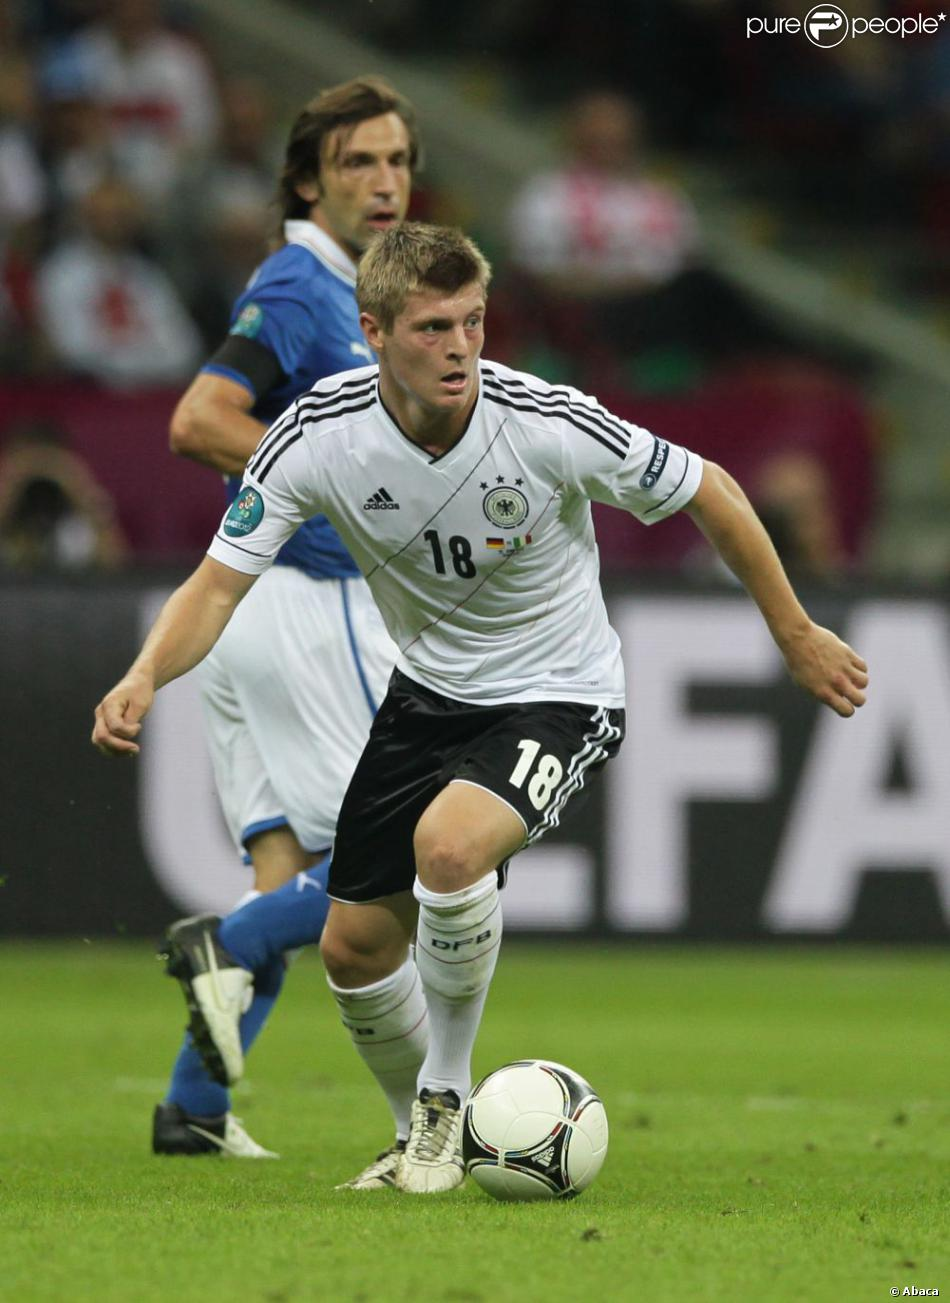 toni kroos durant la demi finale de l 39 euro 2012 perdue par l 39 allemagne face l 39 italie le 28. Black Bedroom Furniture Sets. Home Design Ideas